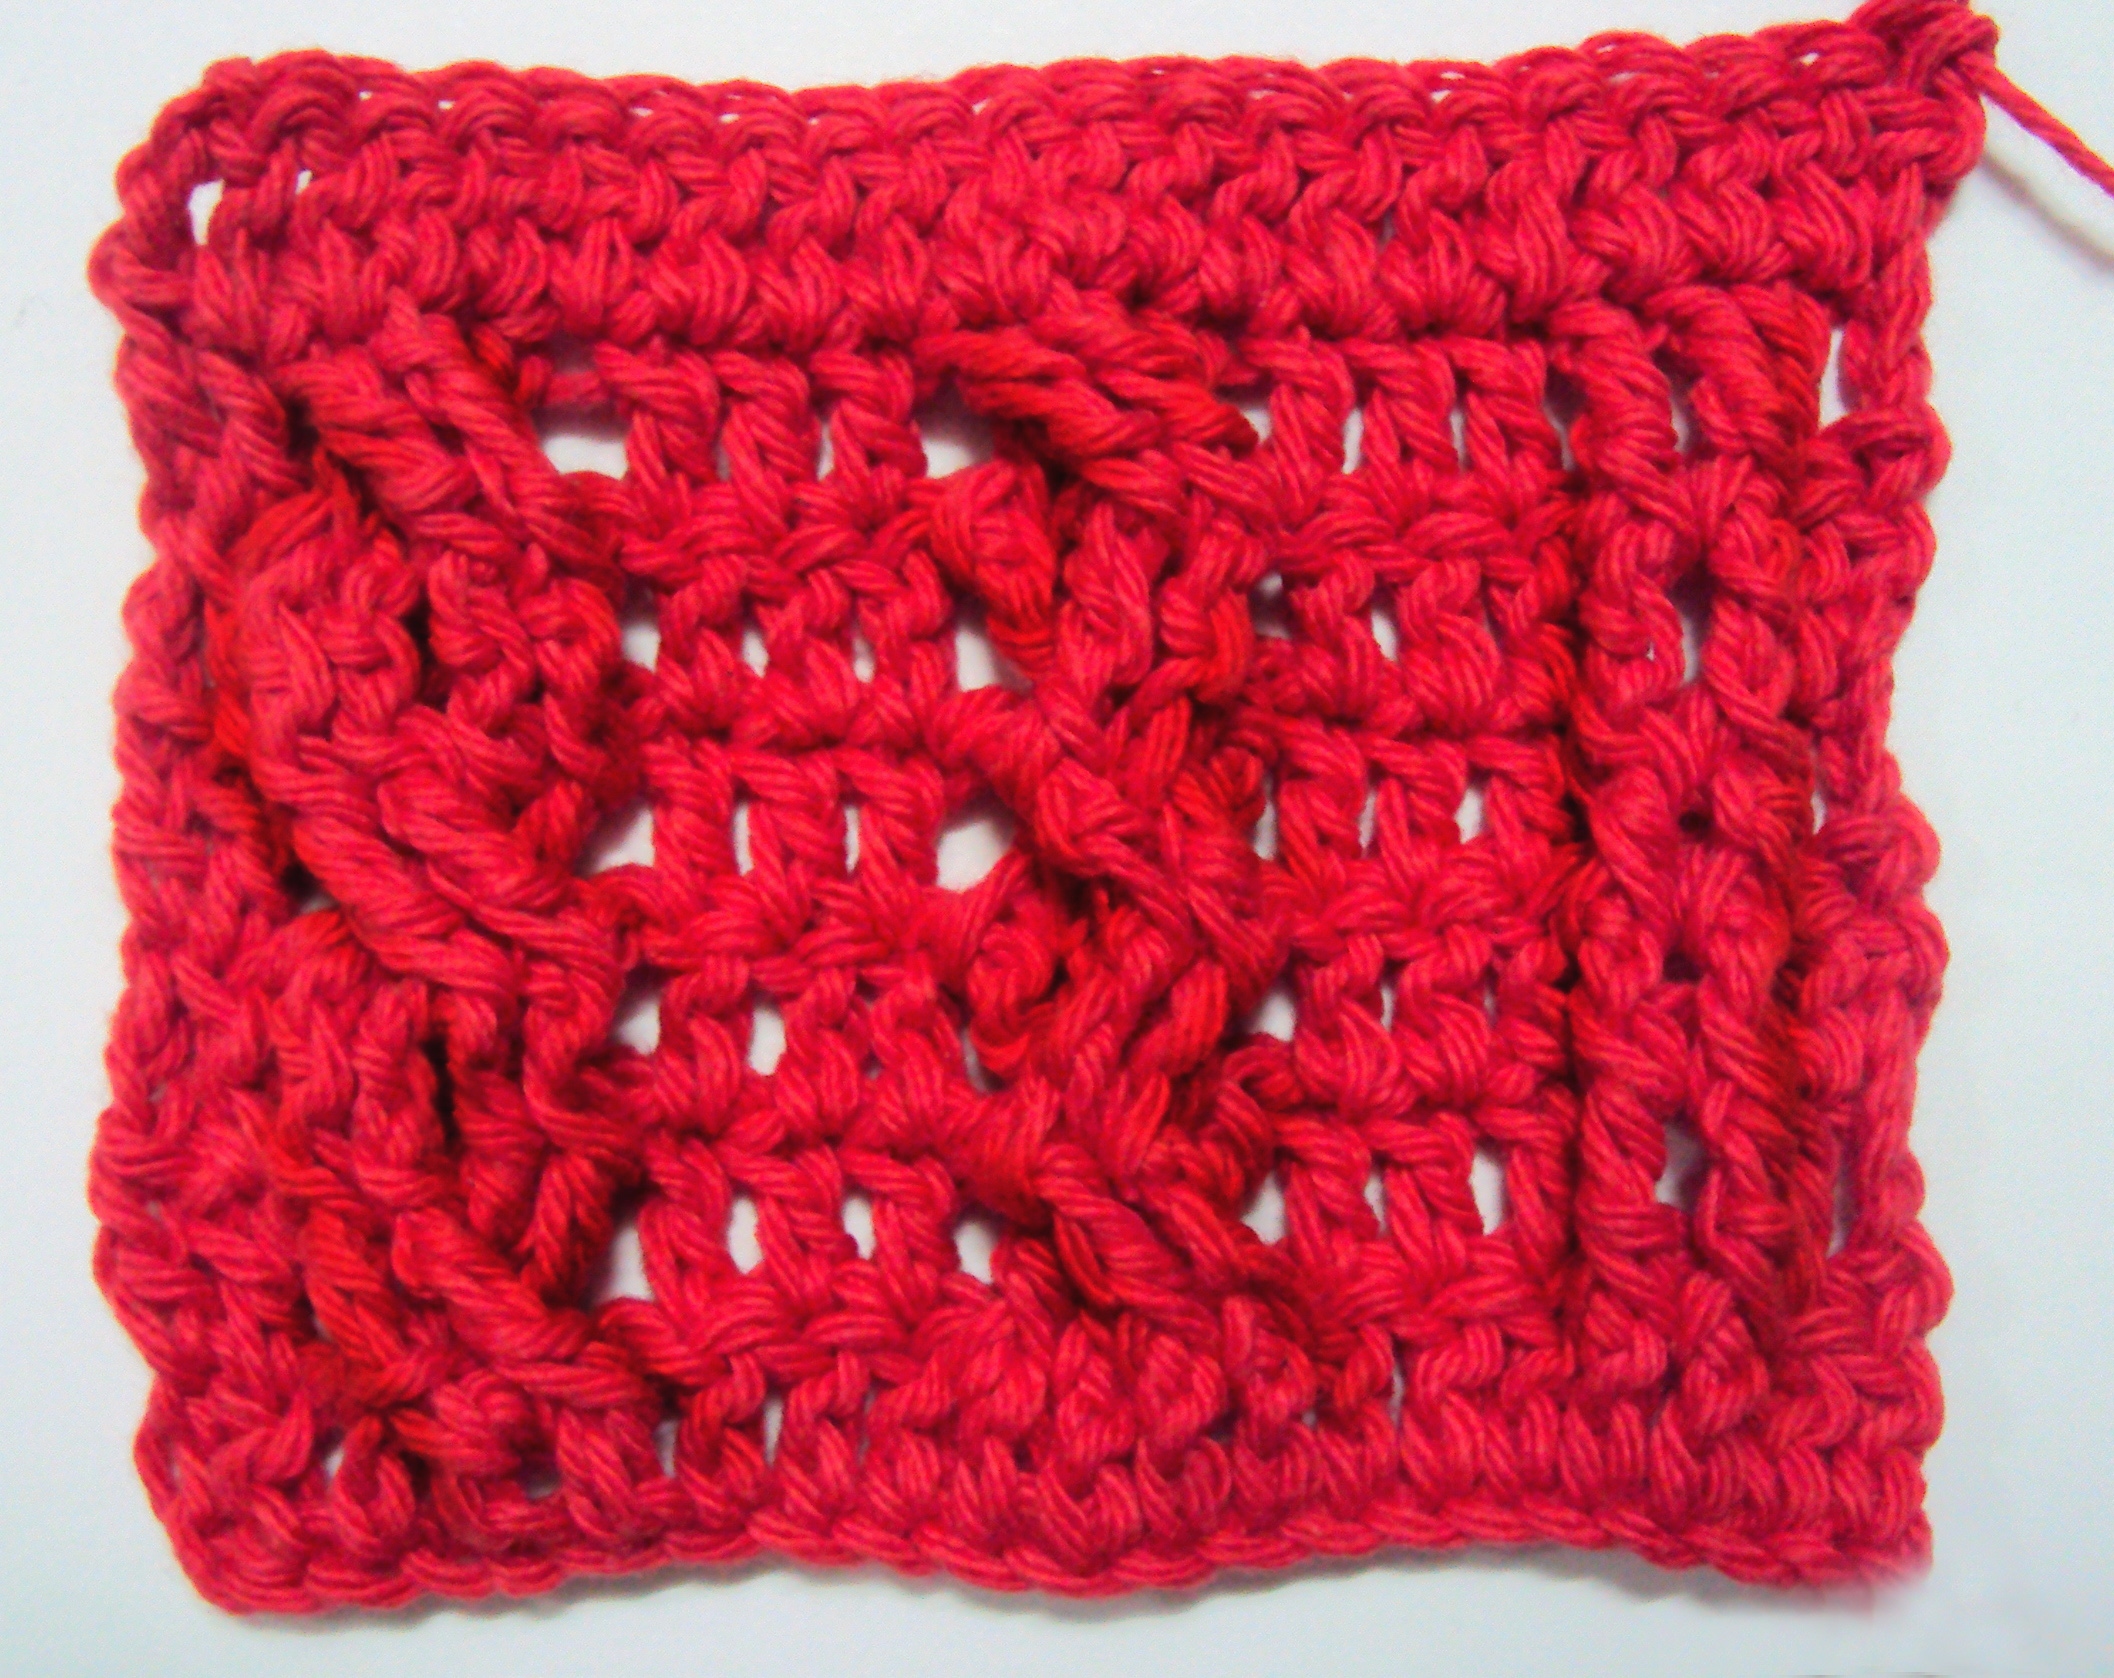 Crochet Stitches Video : ... How to Crochet: Cable Stitches - Crochet Patterns, Tutorials and News